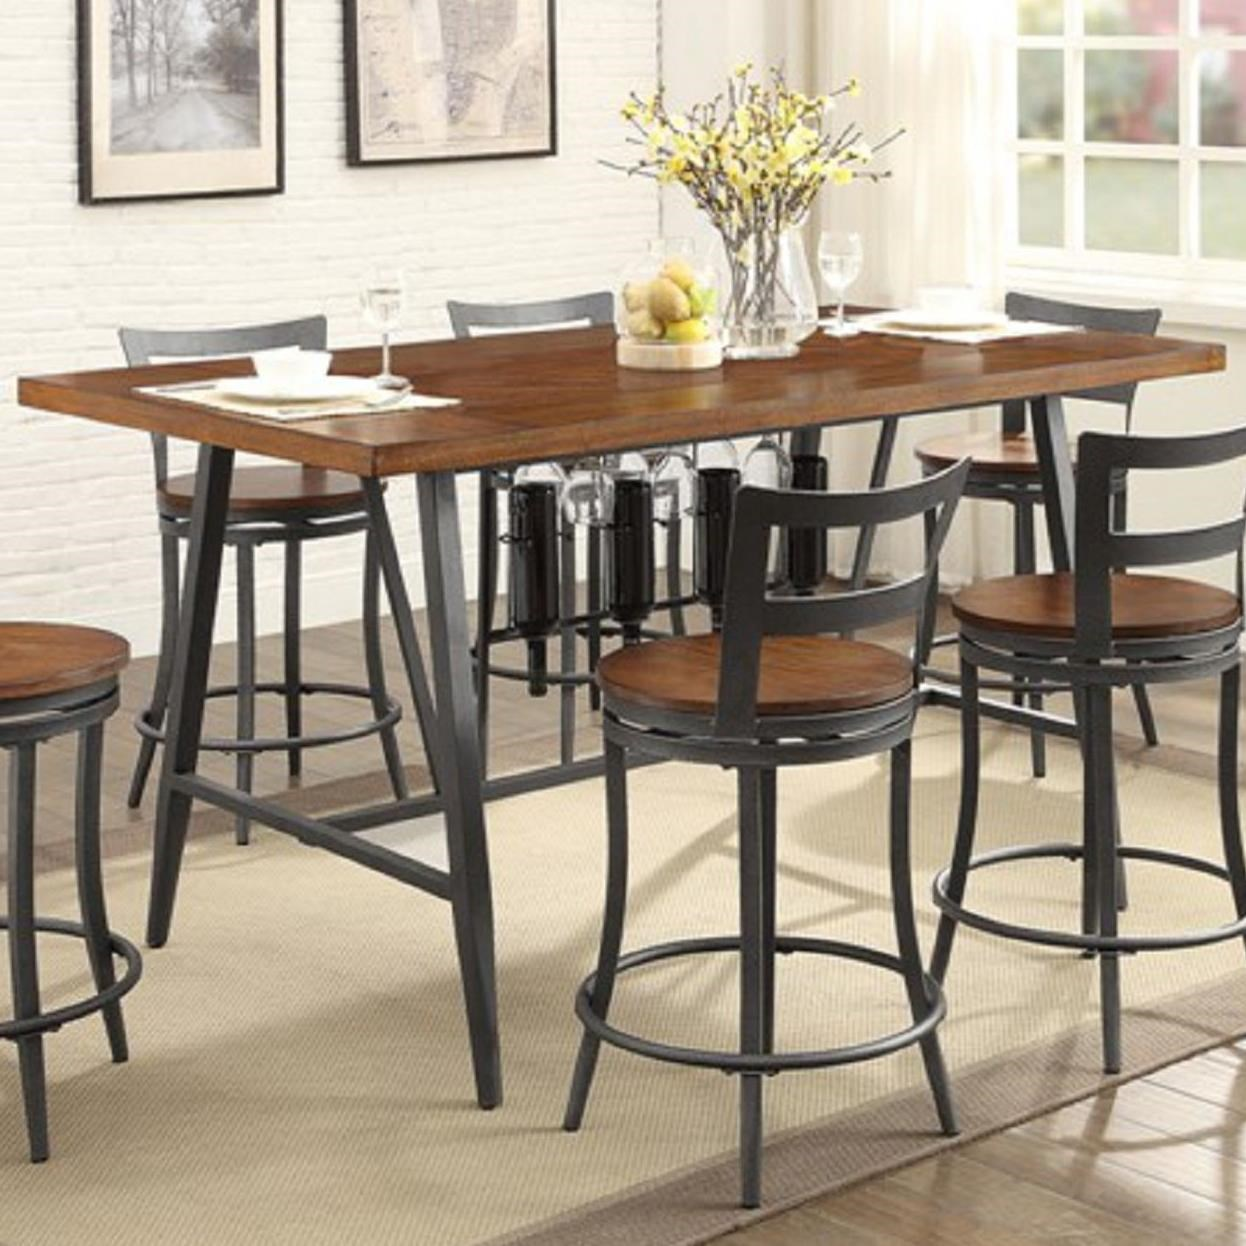 Homelegance Selbyville Contemporary Counter Height Table